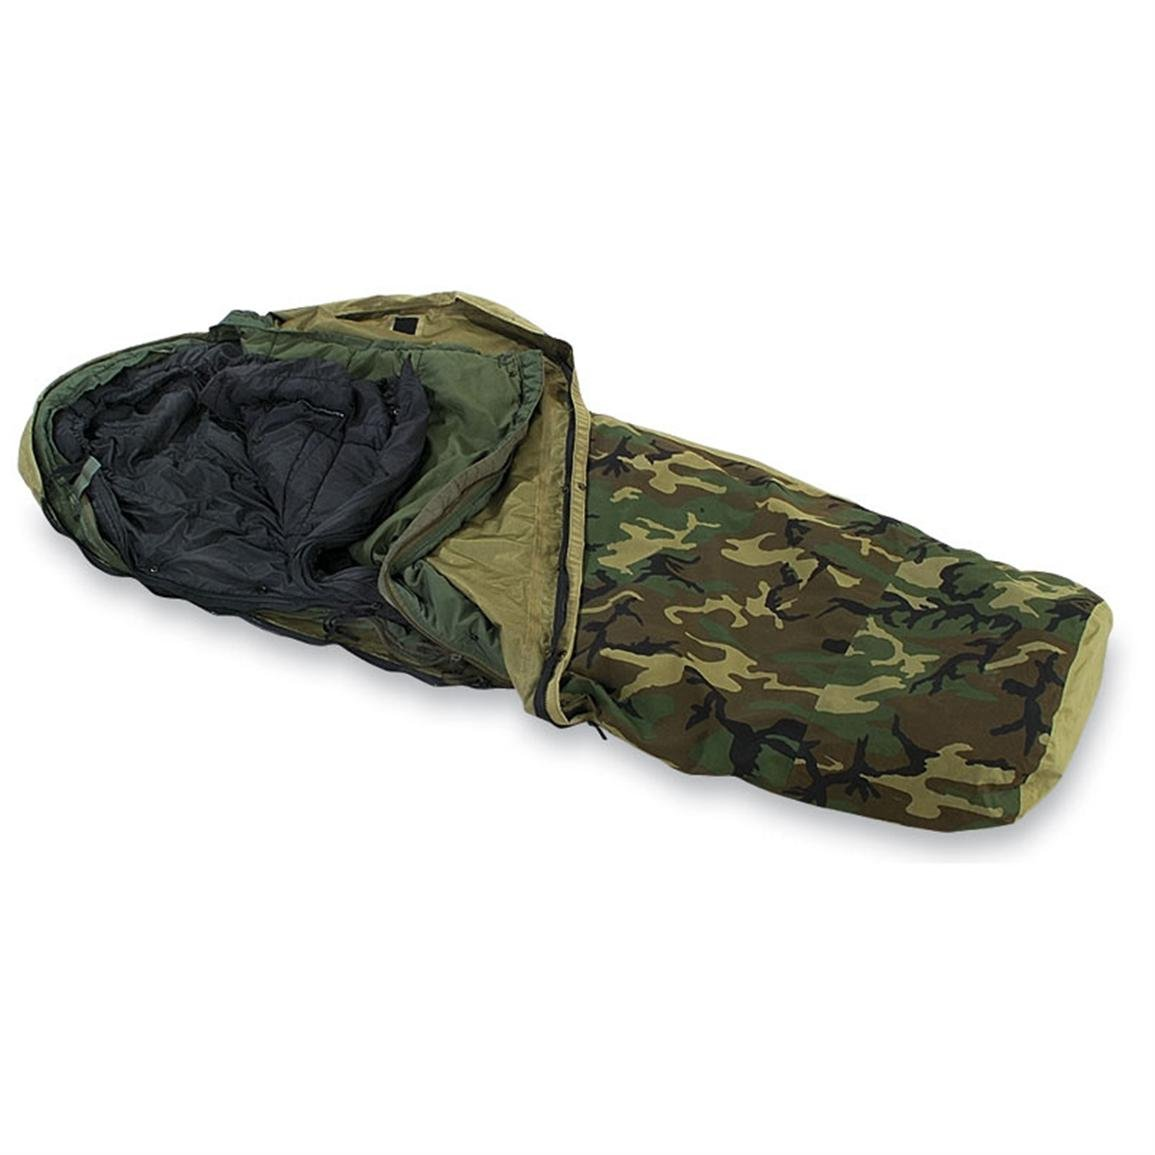 new style 3dc34 a94aa Military Outdoor Clothing Previously Issued USGI Modular Sleeping Bag  System (4-Piece)